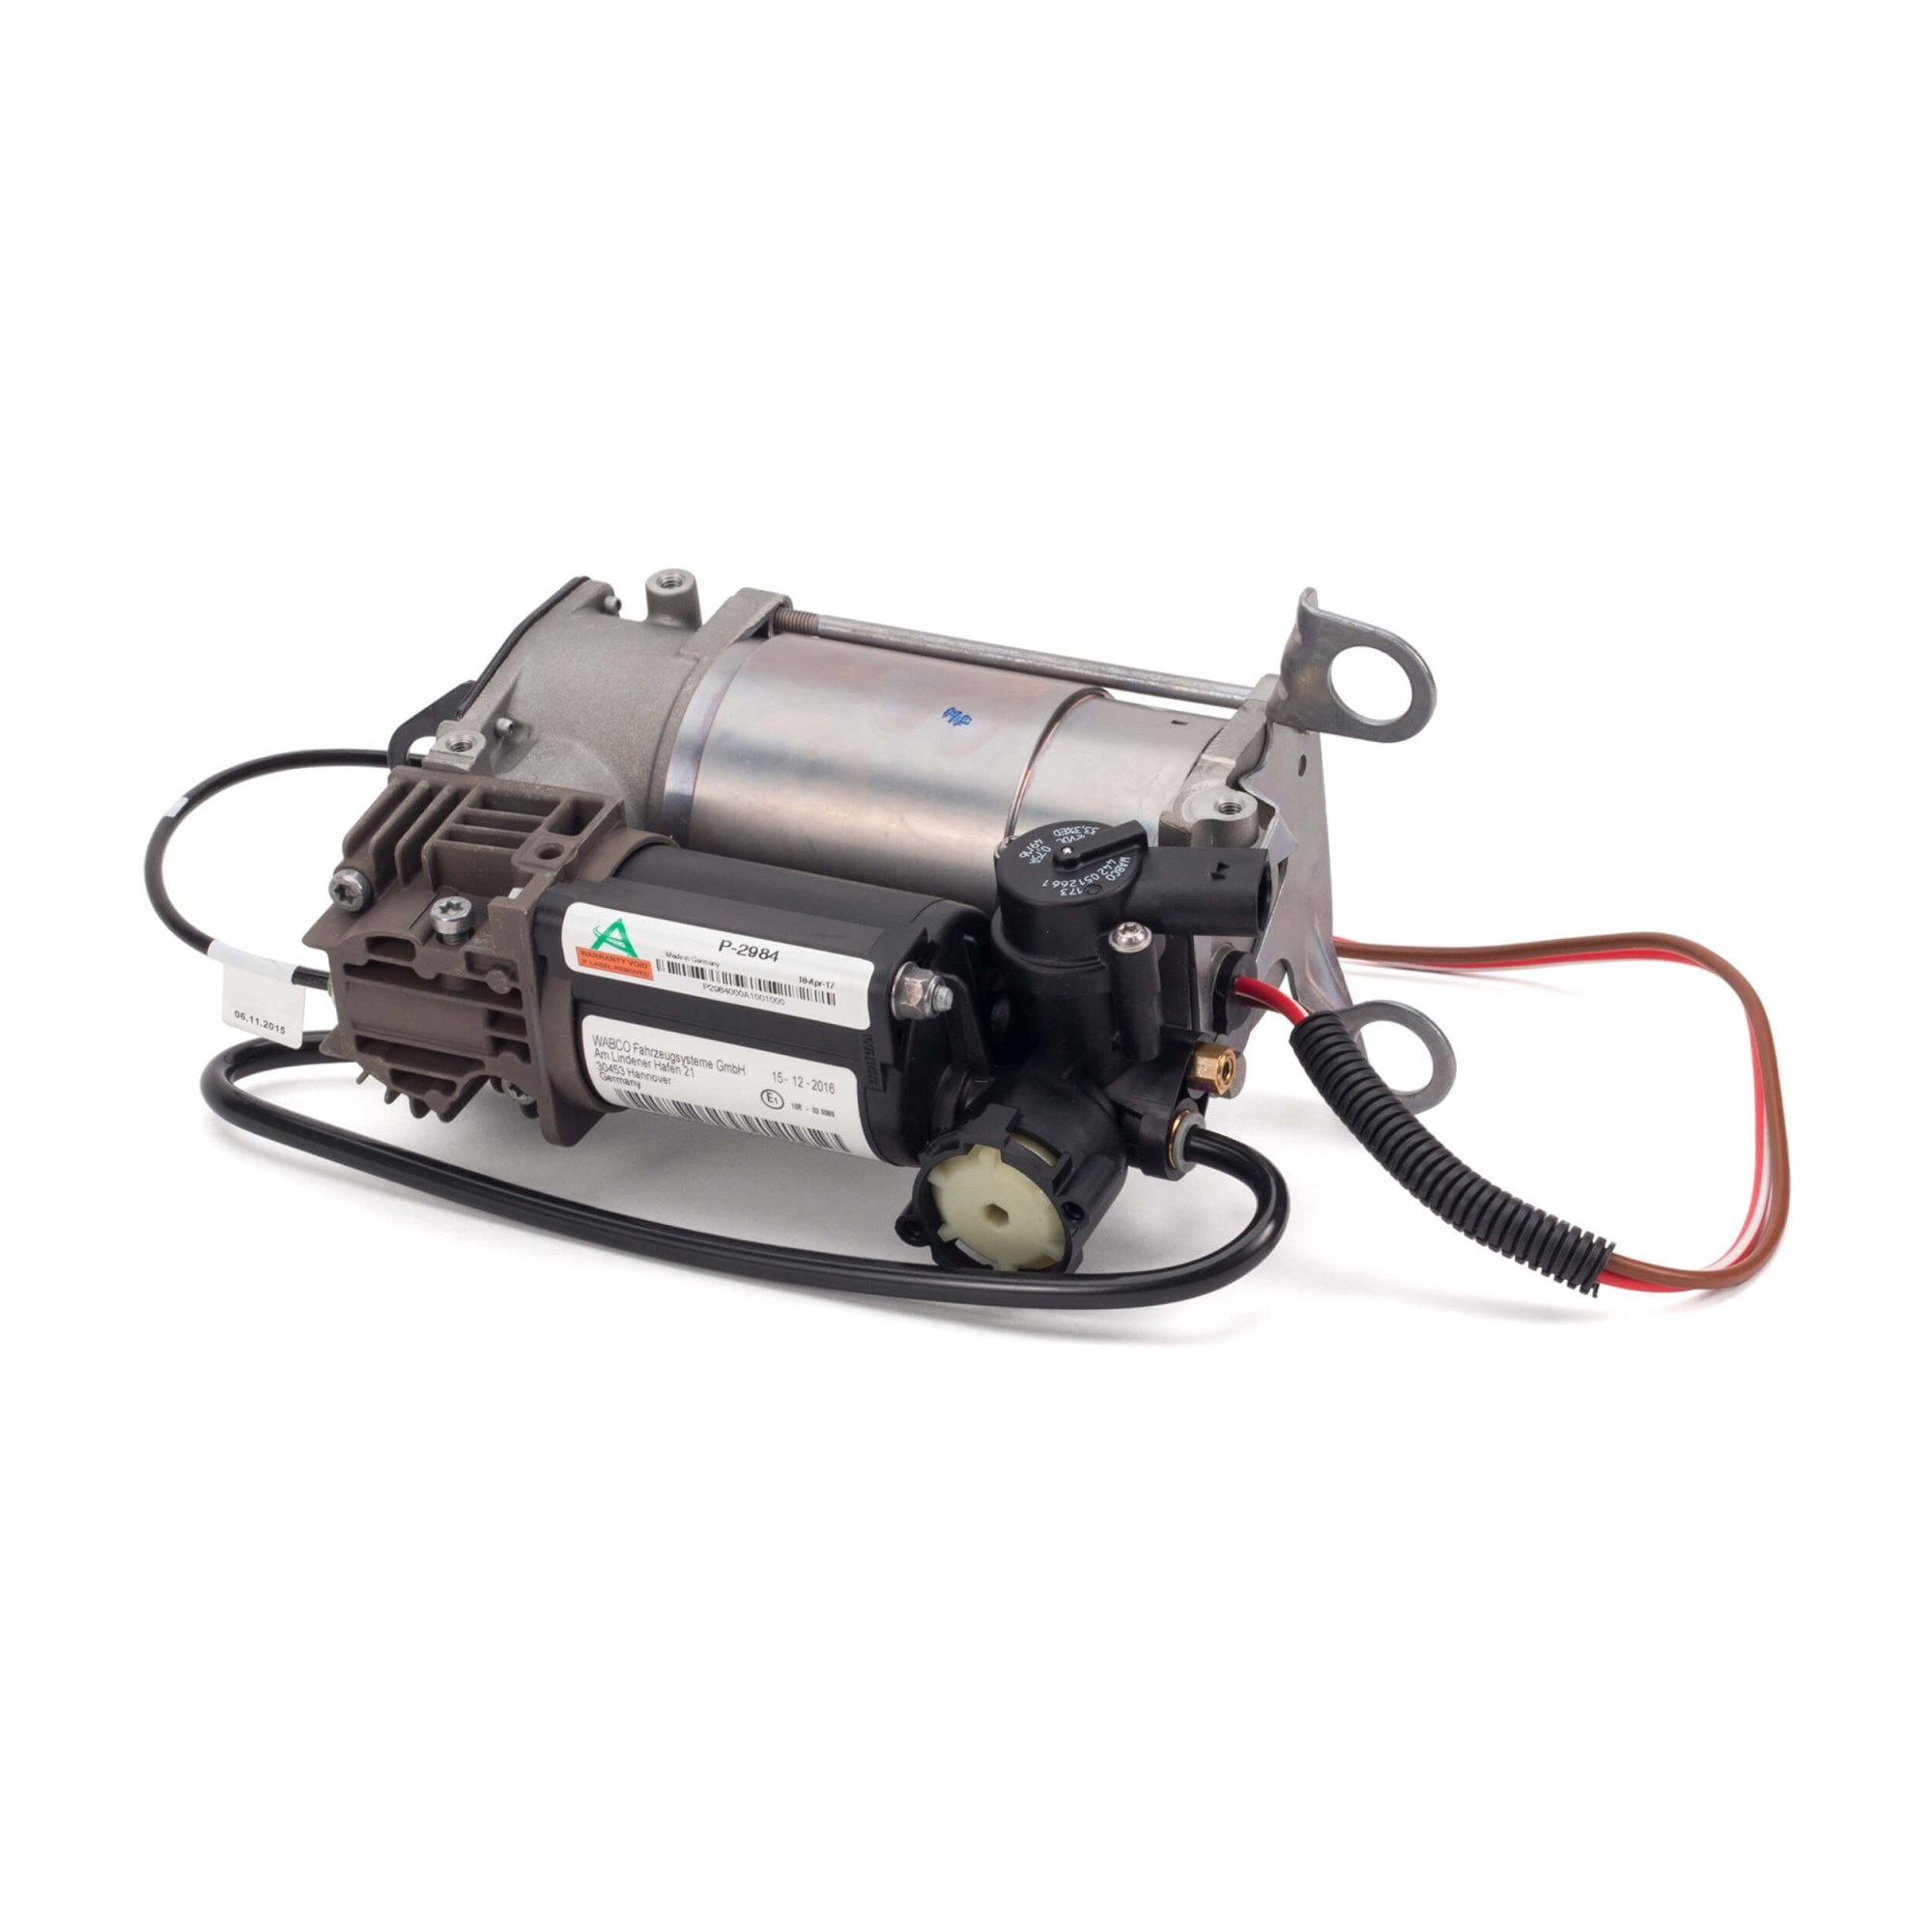 hight resolution of wabco oes air suspension compressor 05 11 audi a6 07 11 audi s6 c6